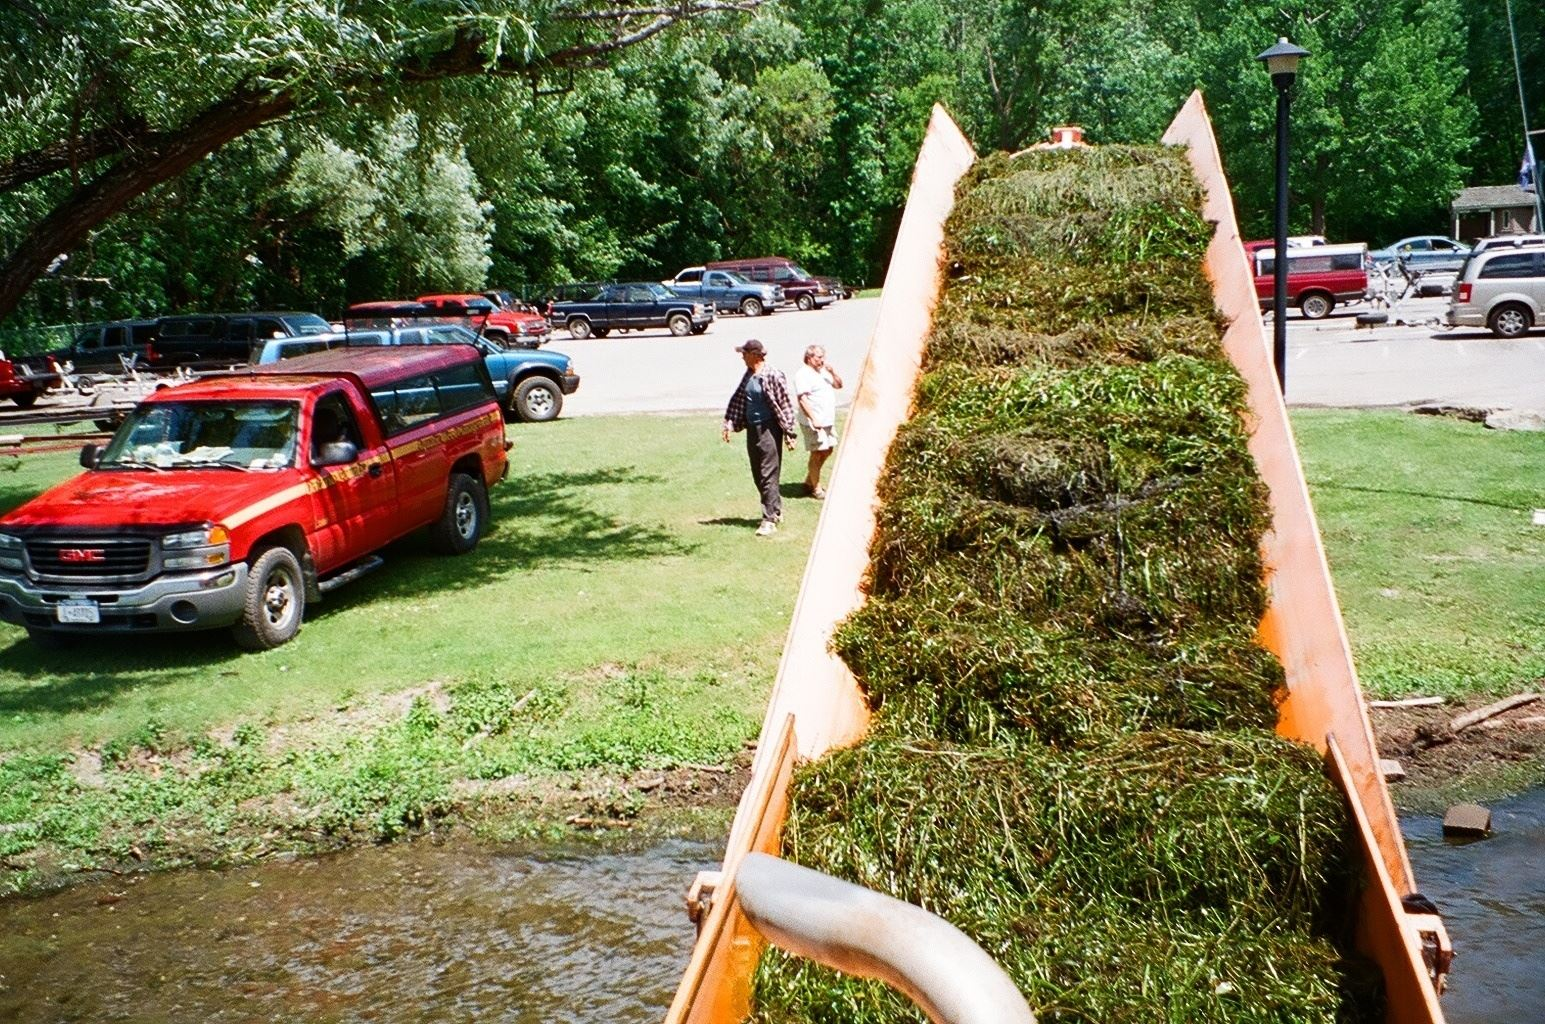 Aquatic weeds being transported from harvester to truck by conveyor, Honeoye Lake